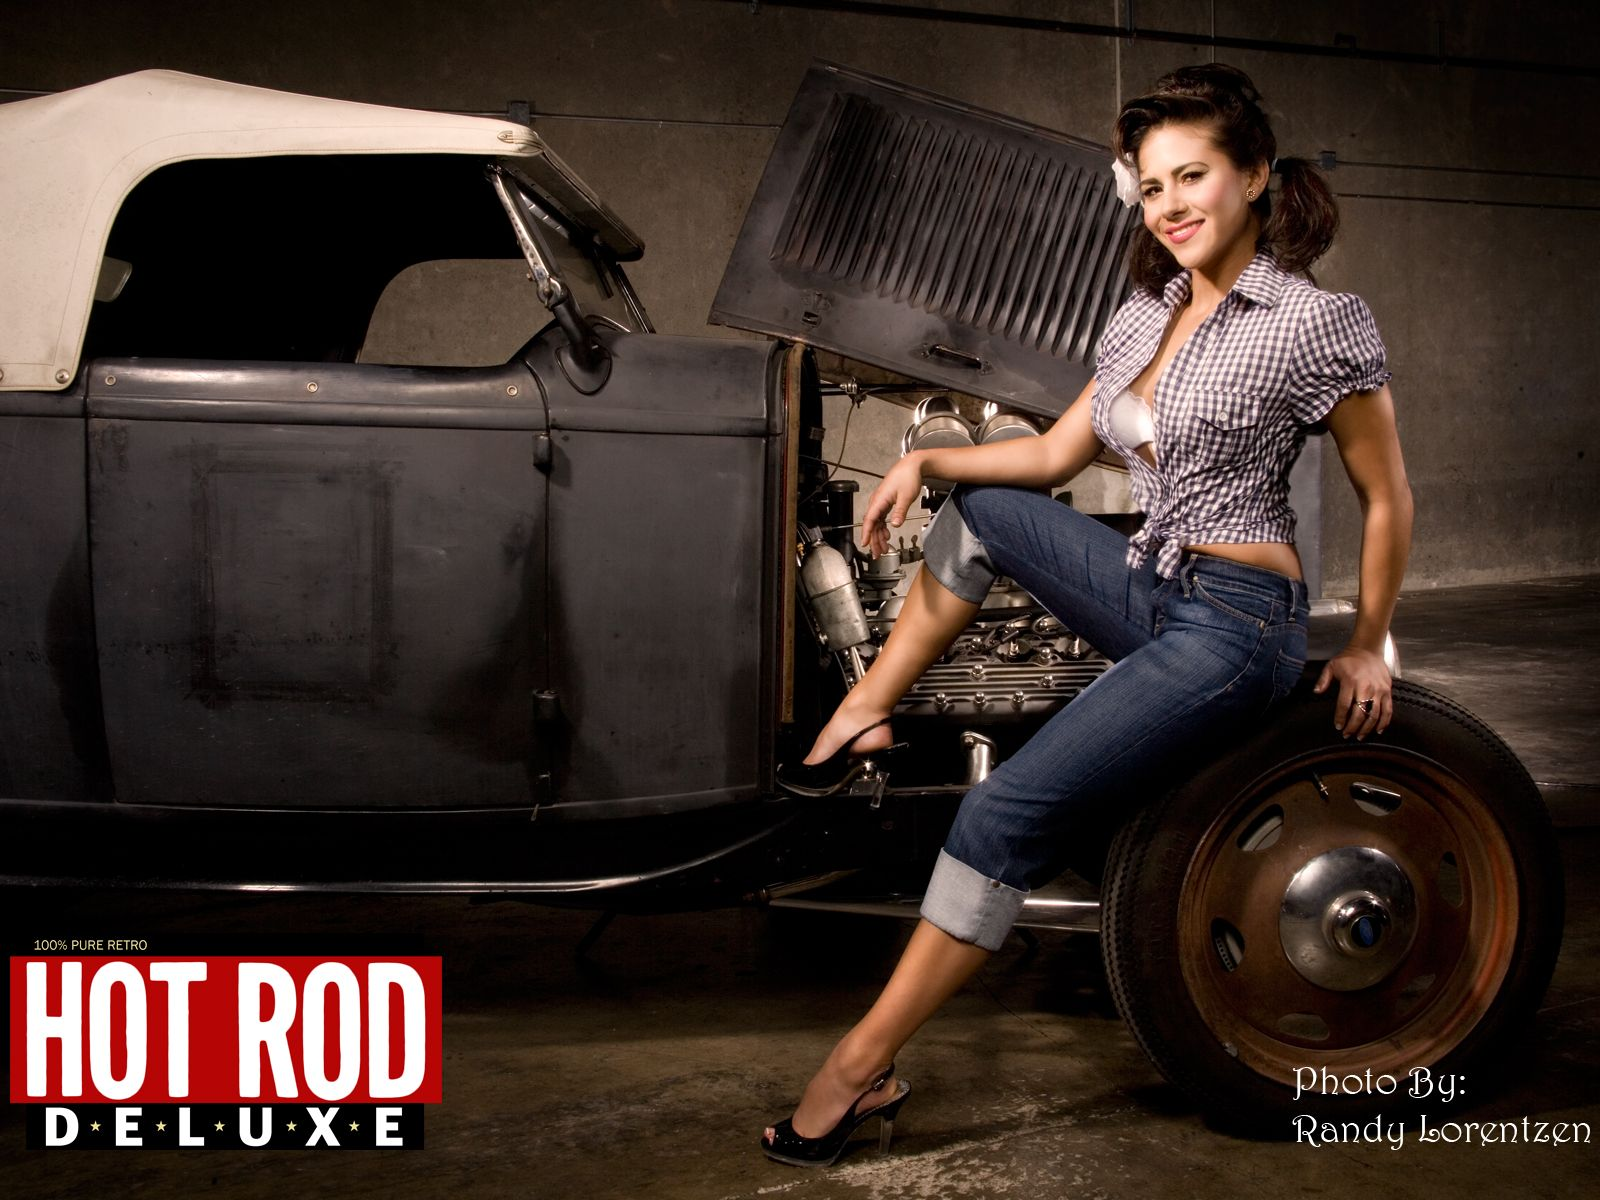 Hrdp Muscle Car Hot Rod Desktops Deluxe Girls